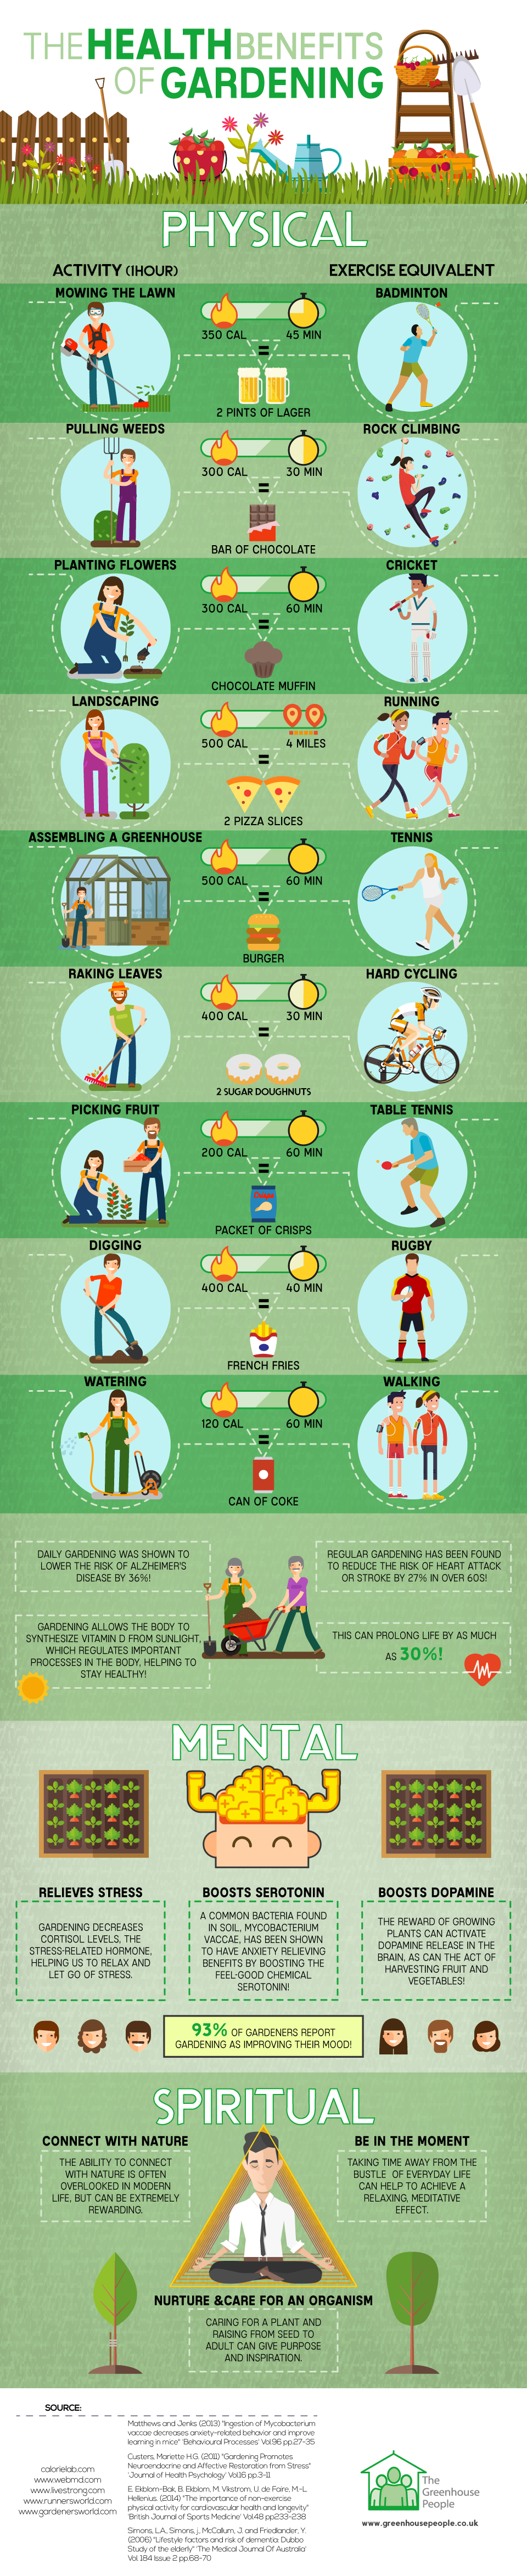 Gardening Your Way to Great Health - Infographic